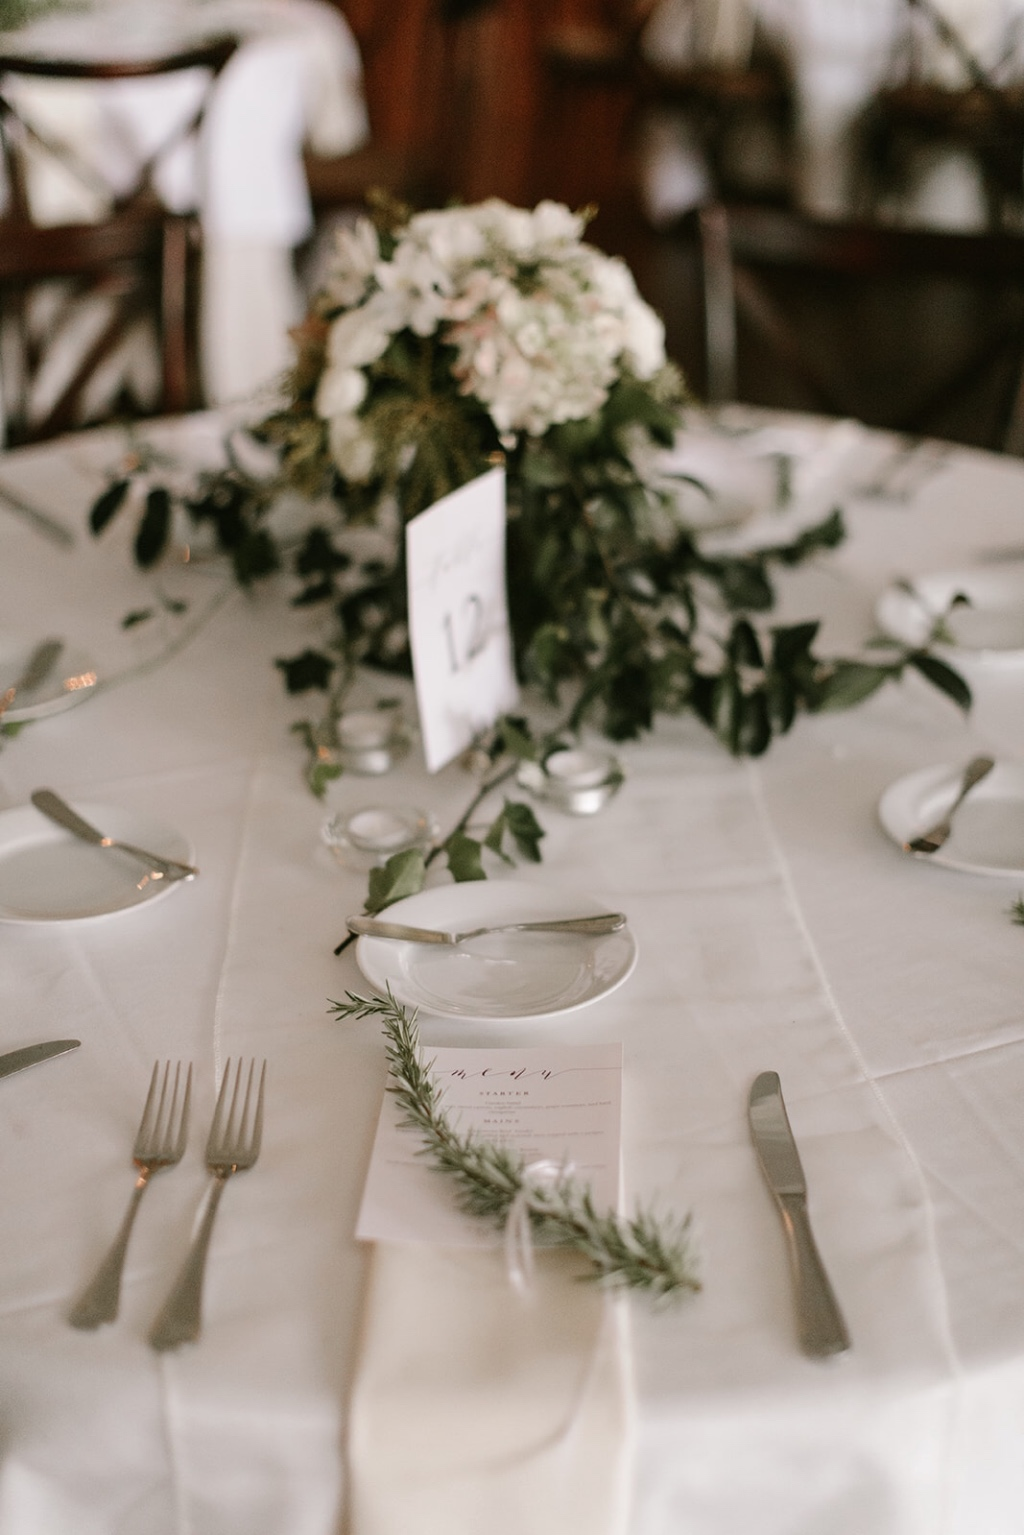 Simple elegance is sometimes the most impactful. At this winery wedding, the bride wanted all-white florals and greens, and each place